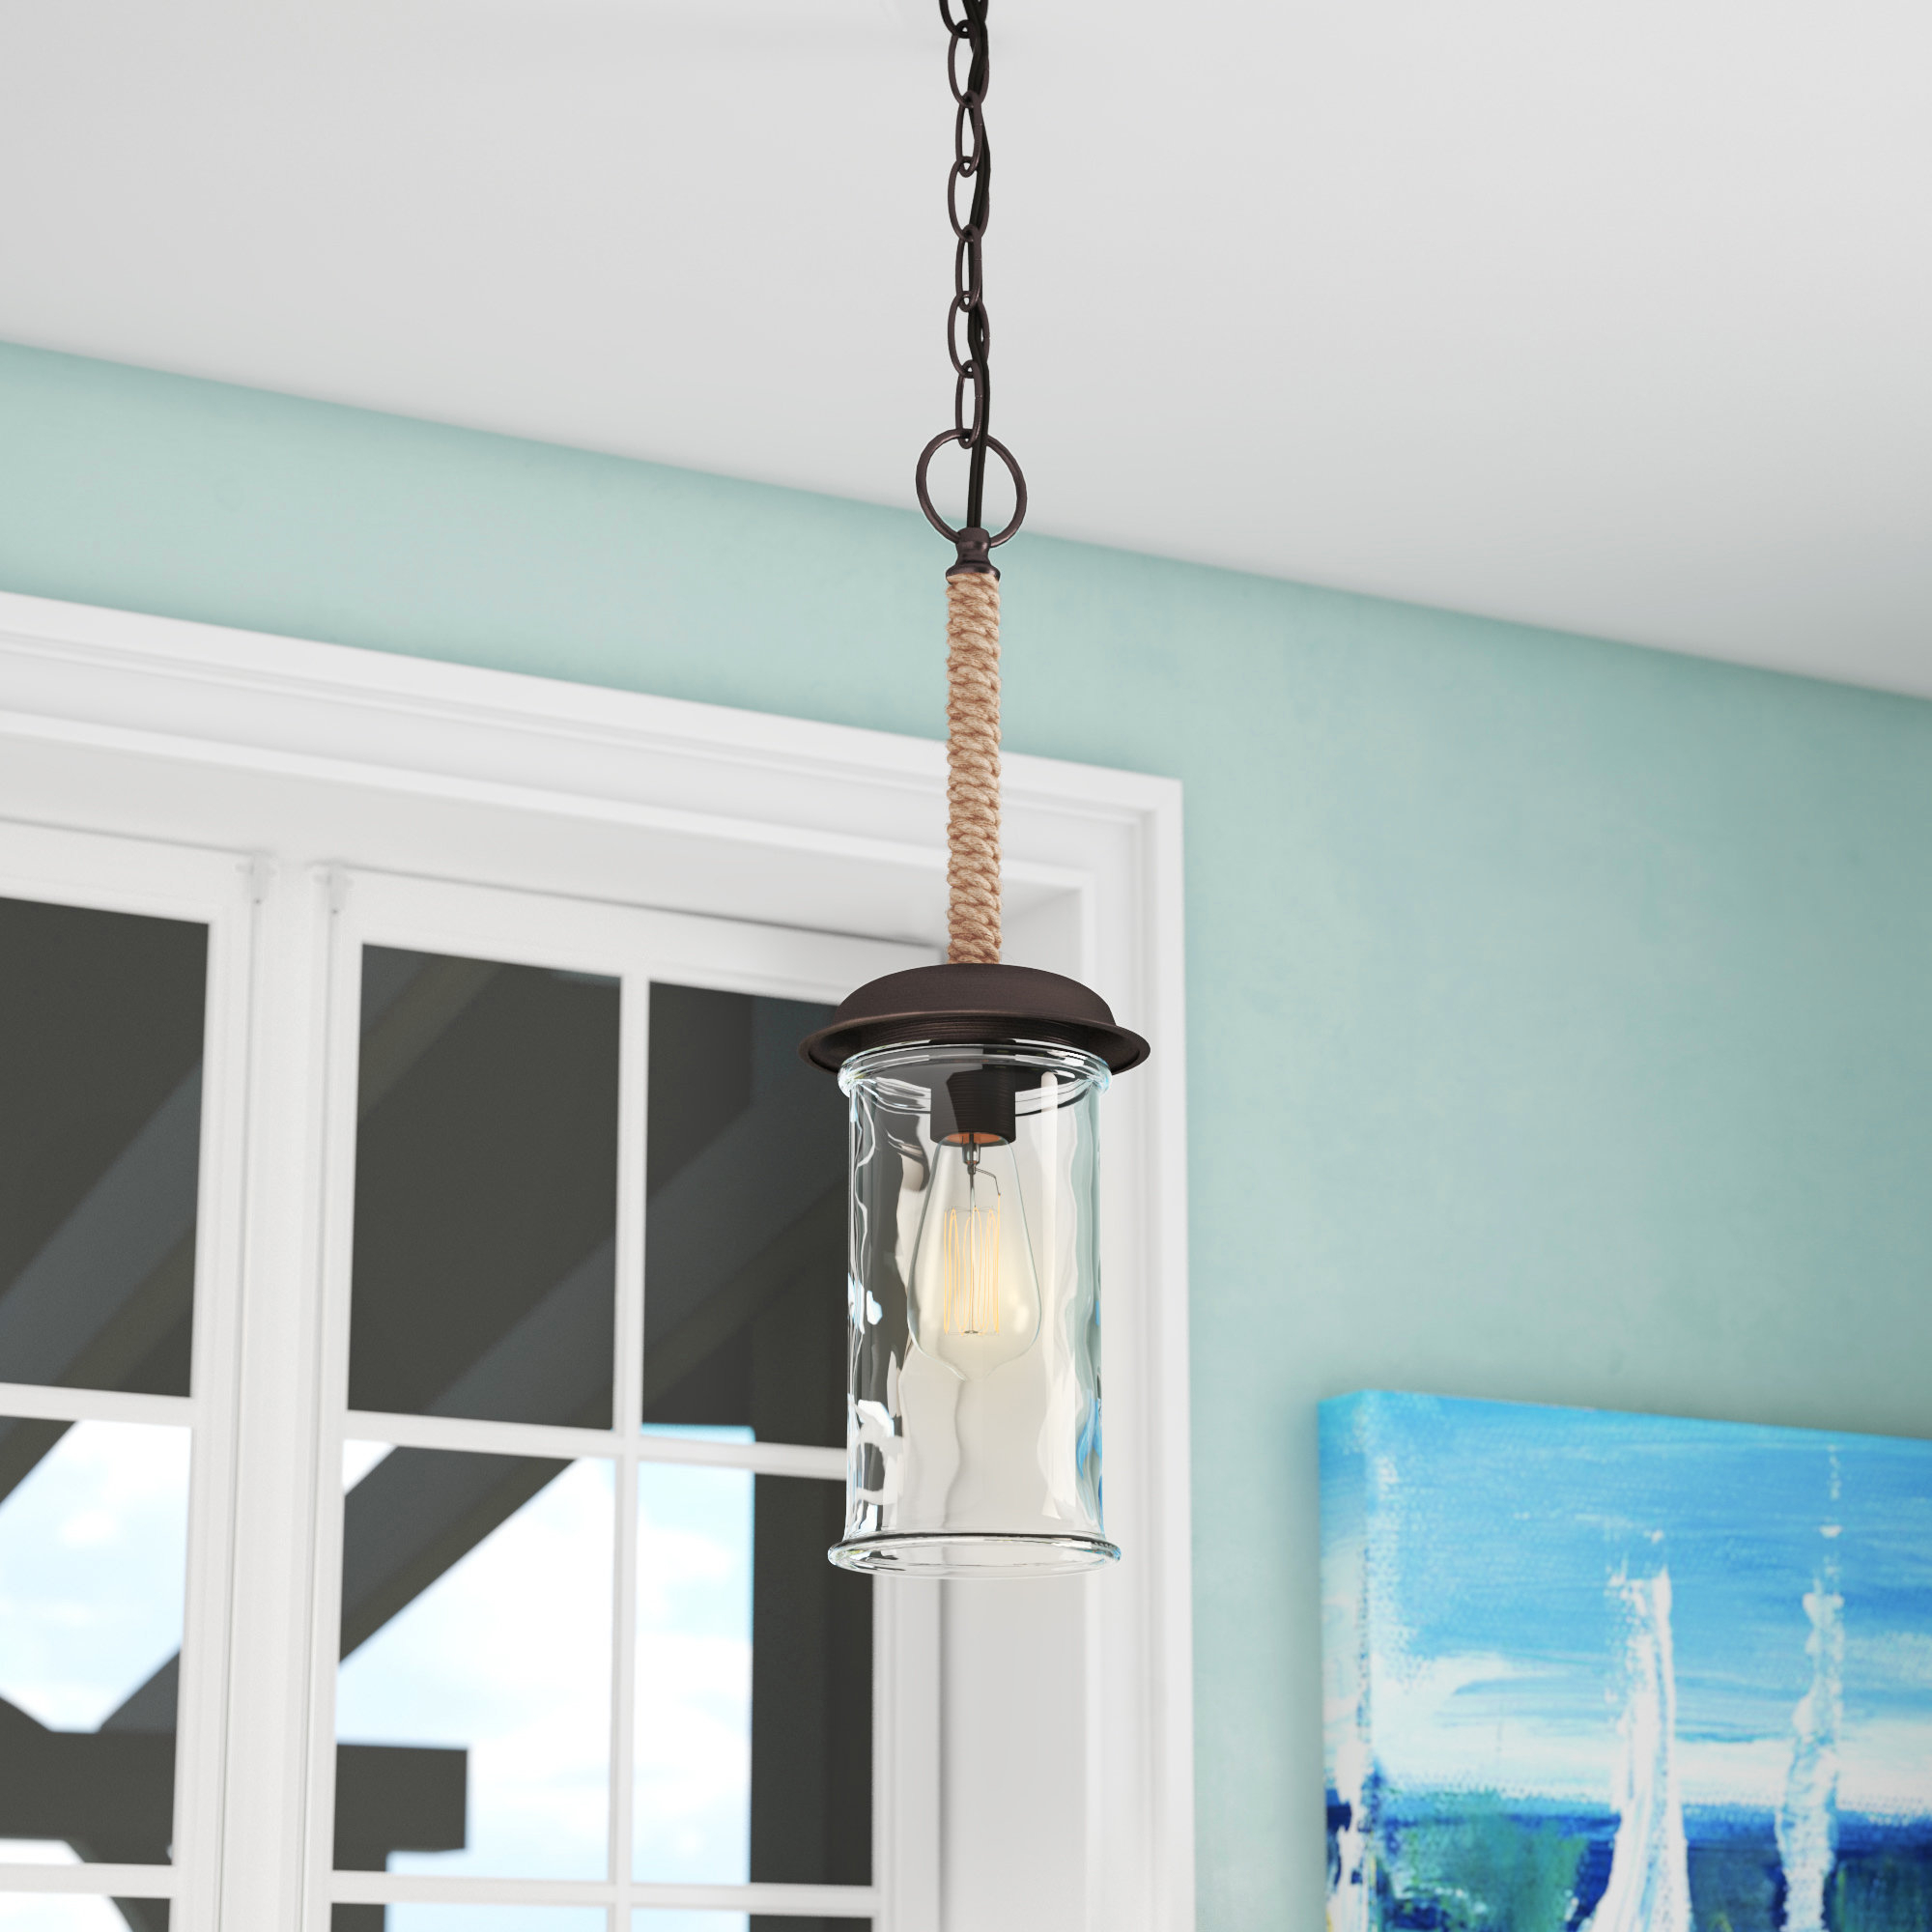 Schutt 1 Light Cylinder Pendants In Most Popular Clear/glass Shade Pendant Lighting You'll Love In  (View 16 of 25)